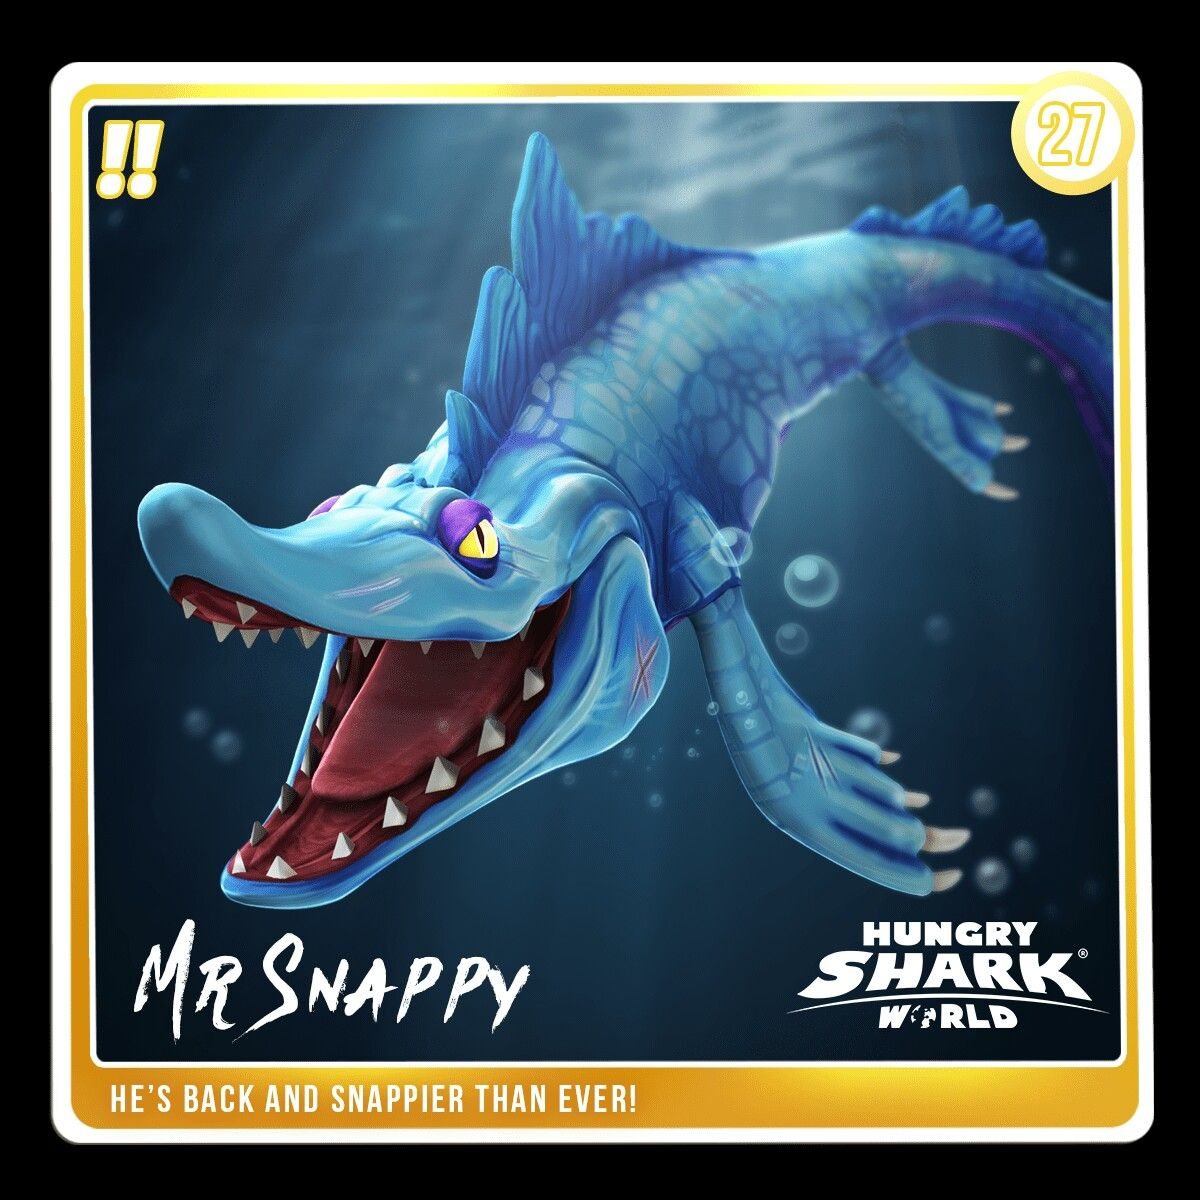 Mr. Snappy (HSW)